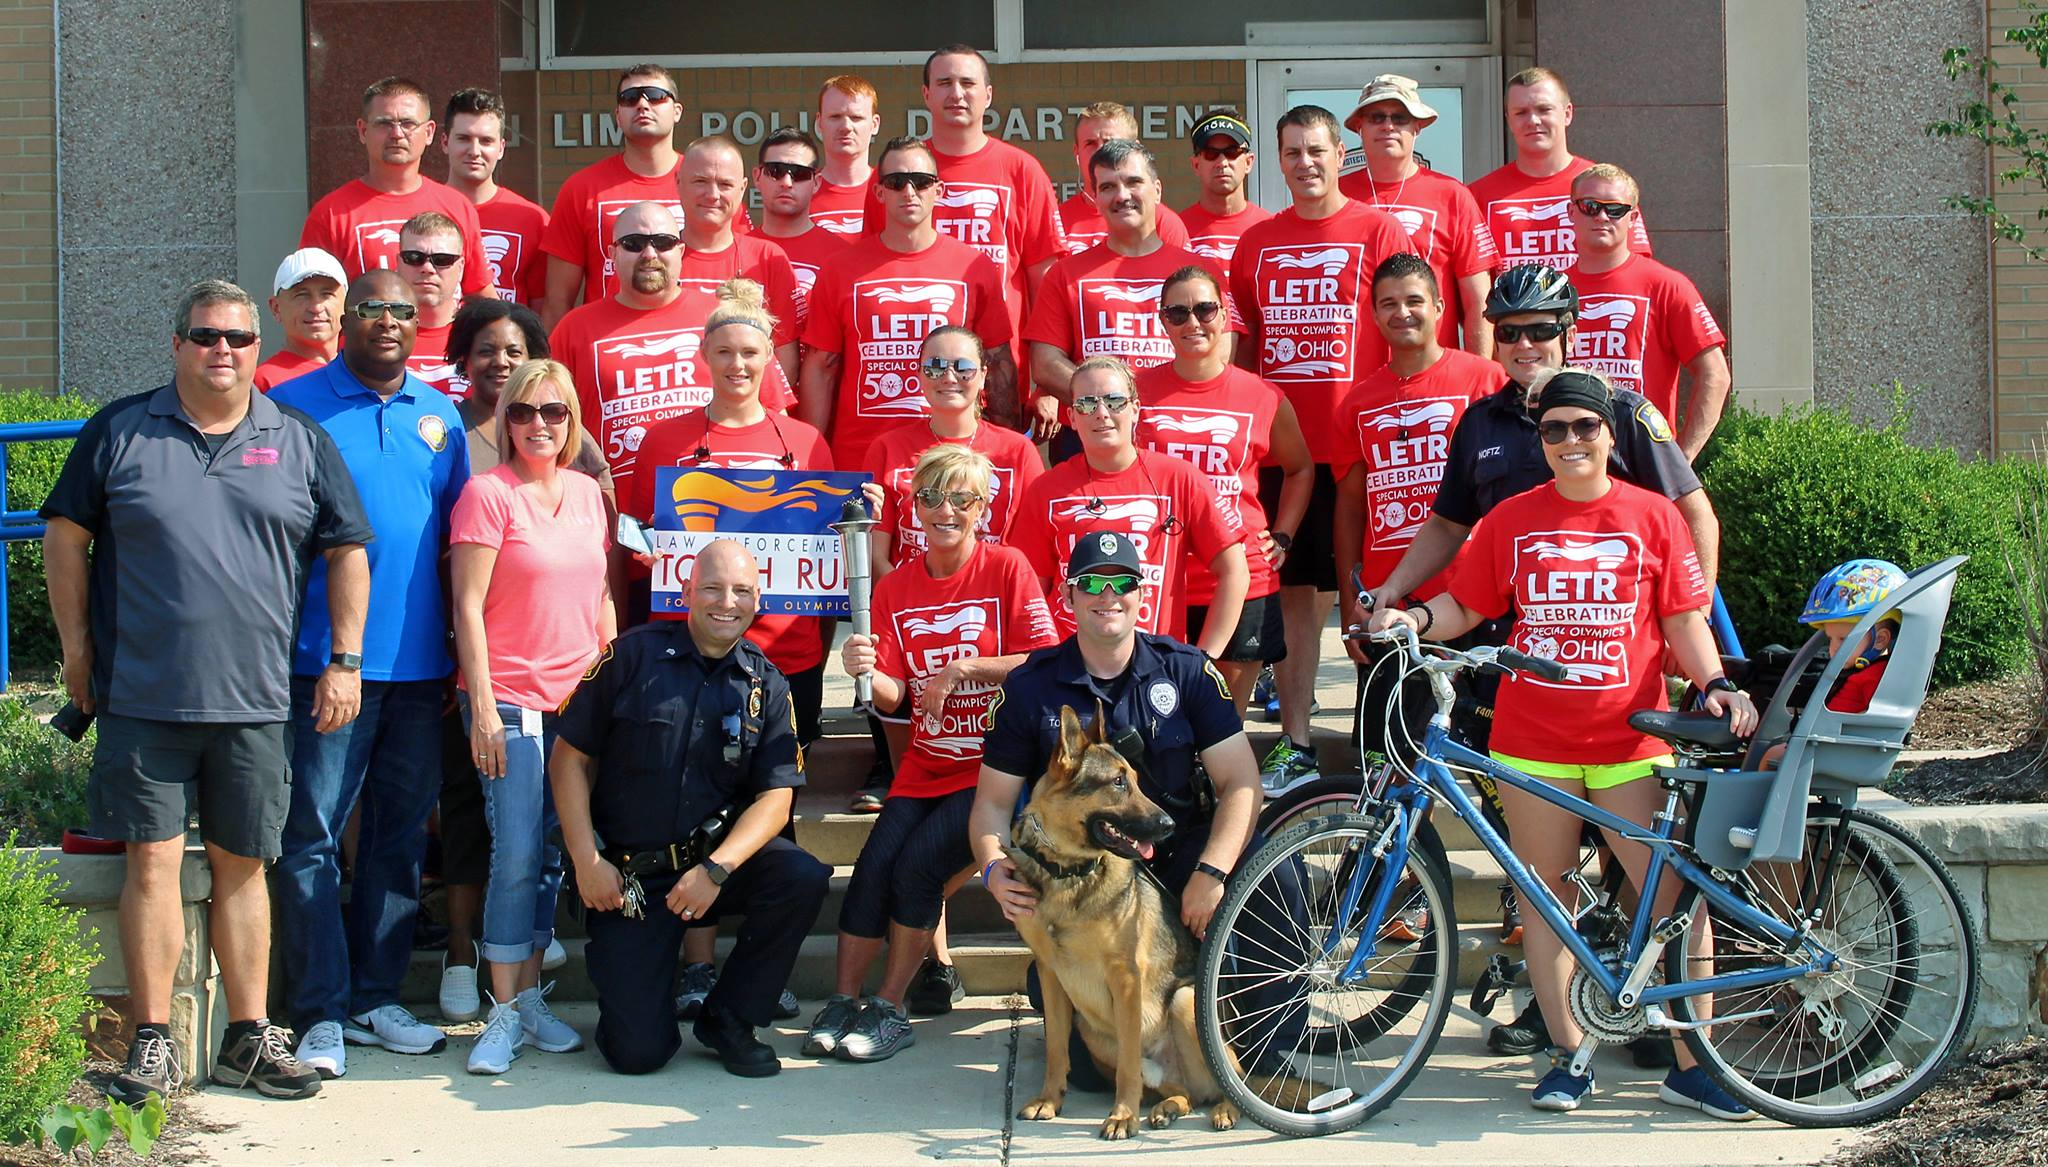 Law Enforcement Torch Run / Release on ODRC involvement